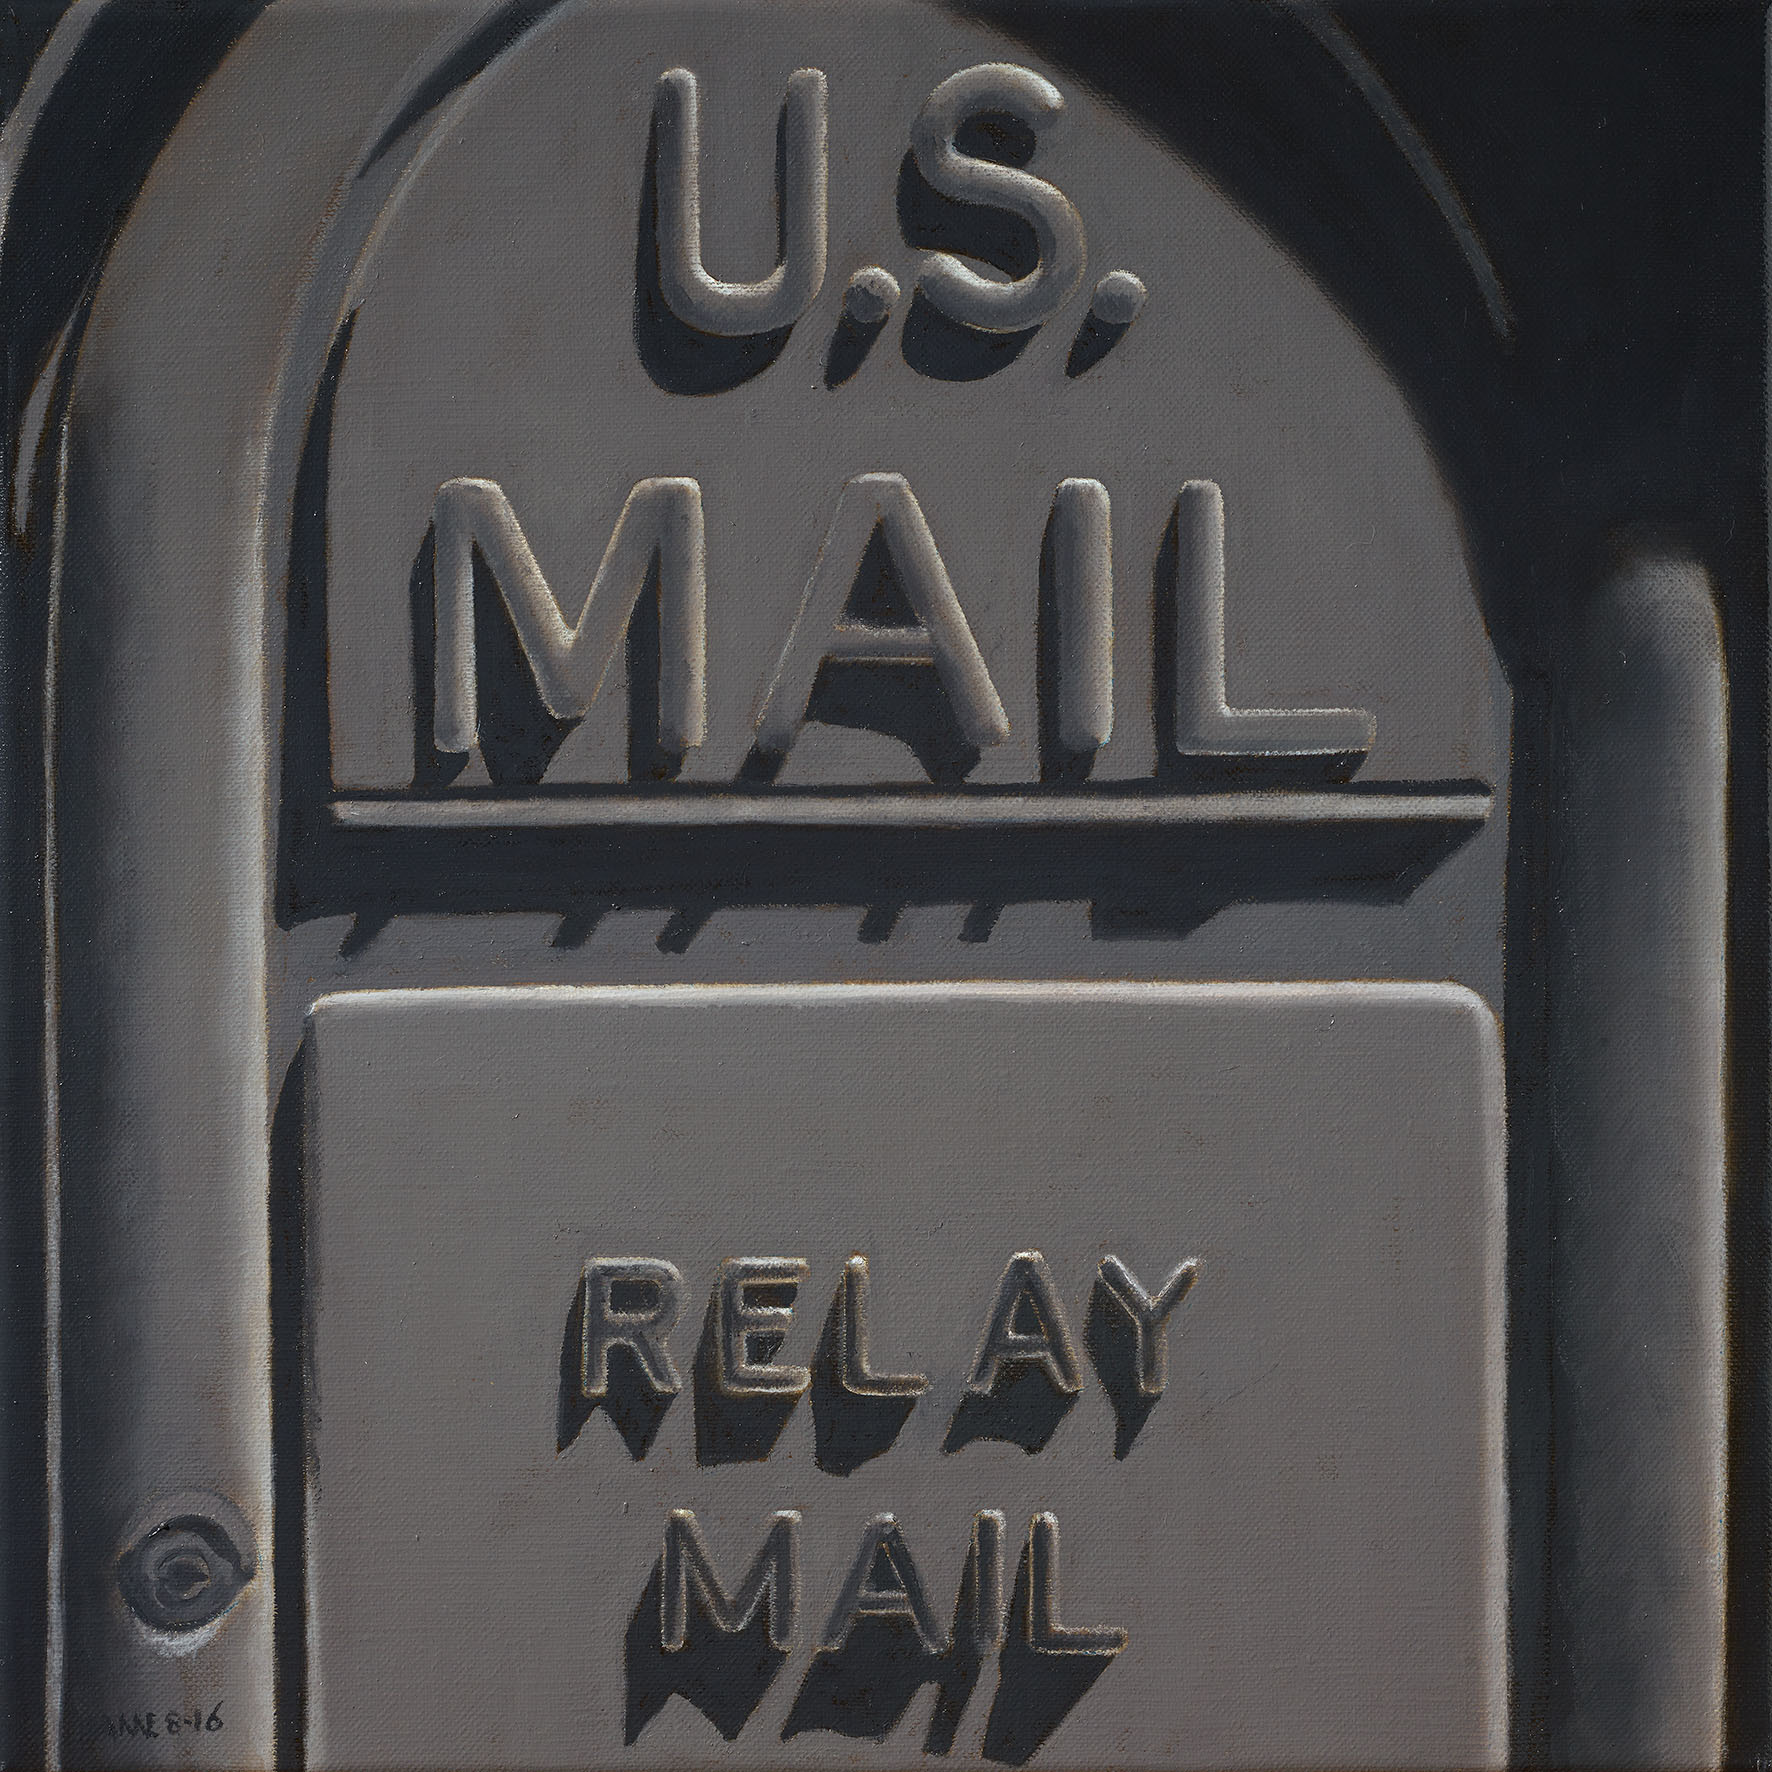 Urban Mailbox -  Available